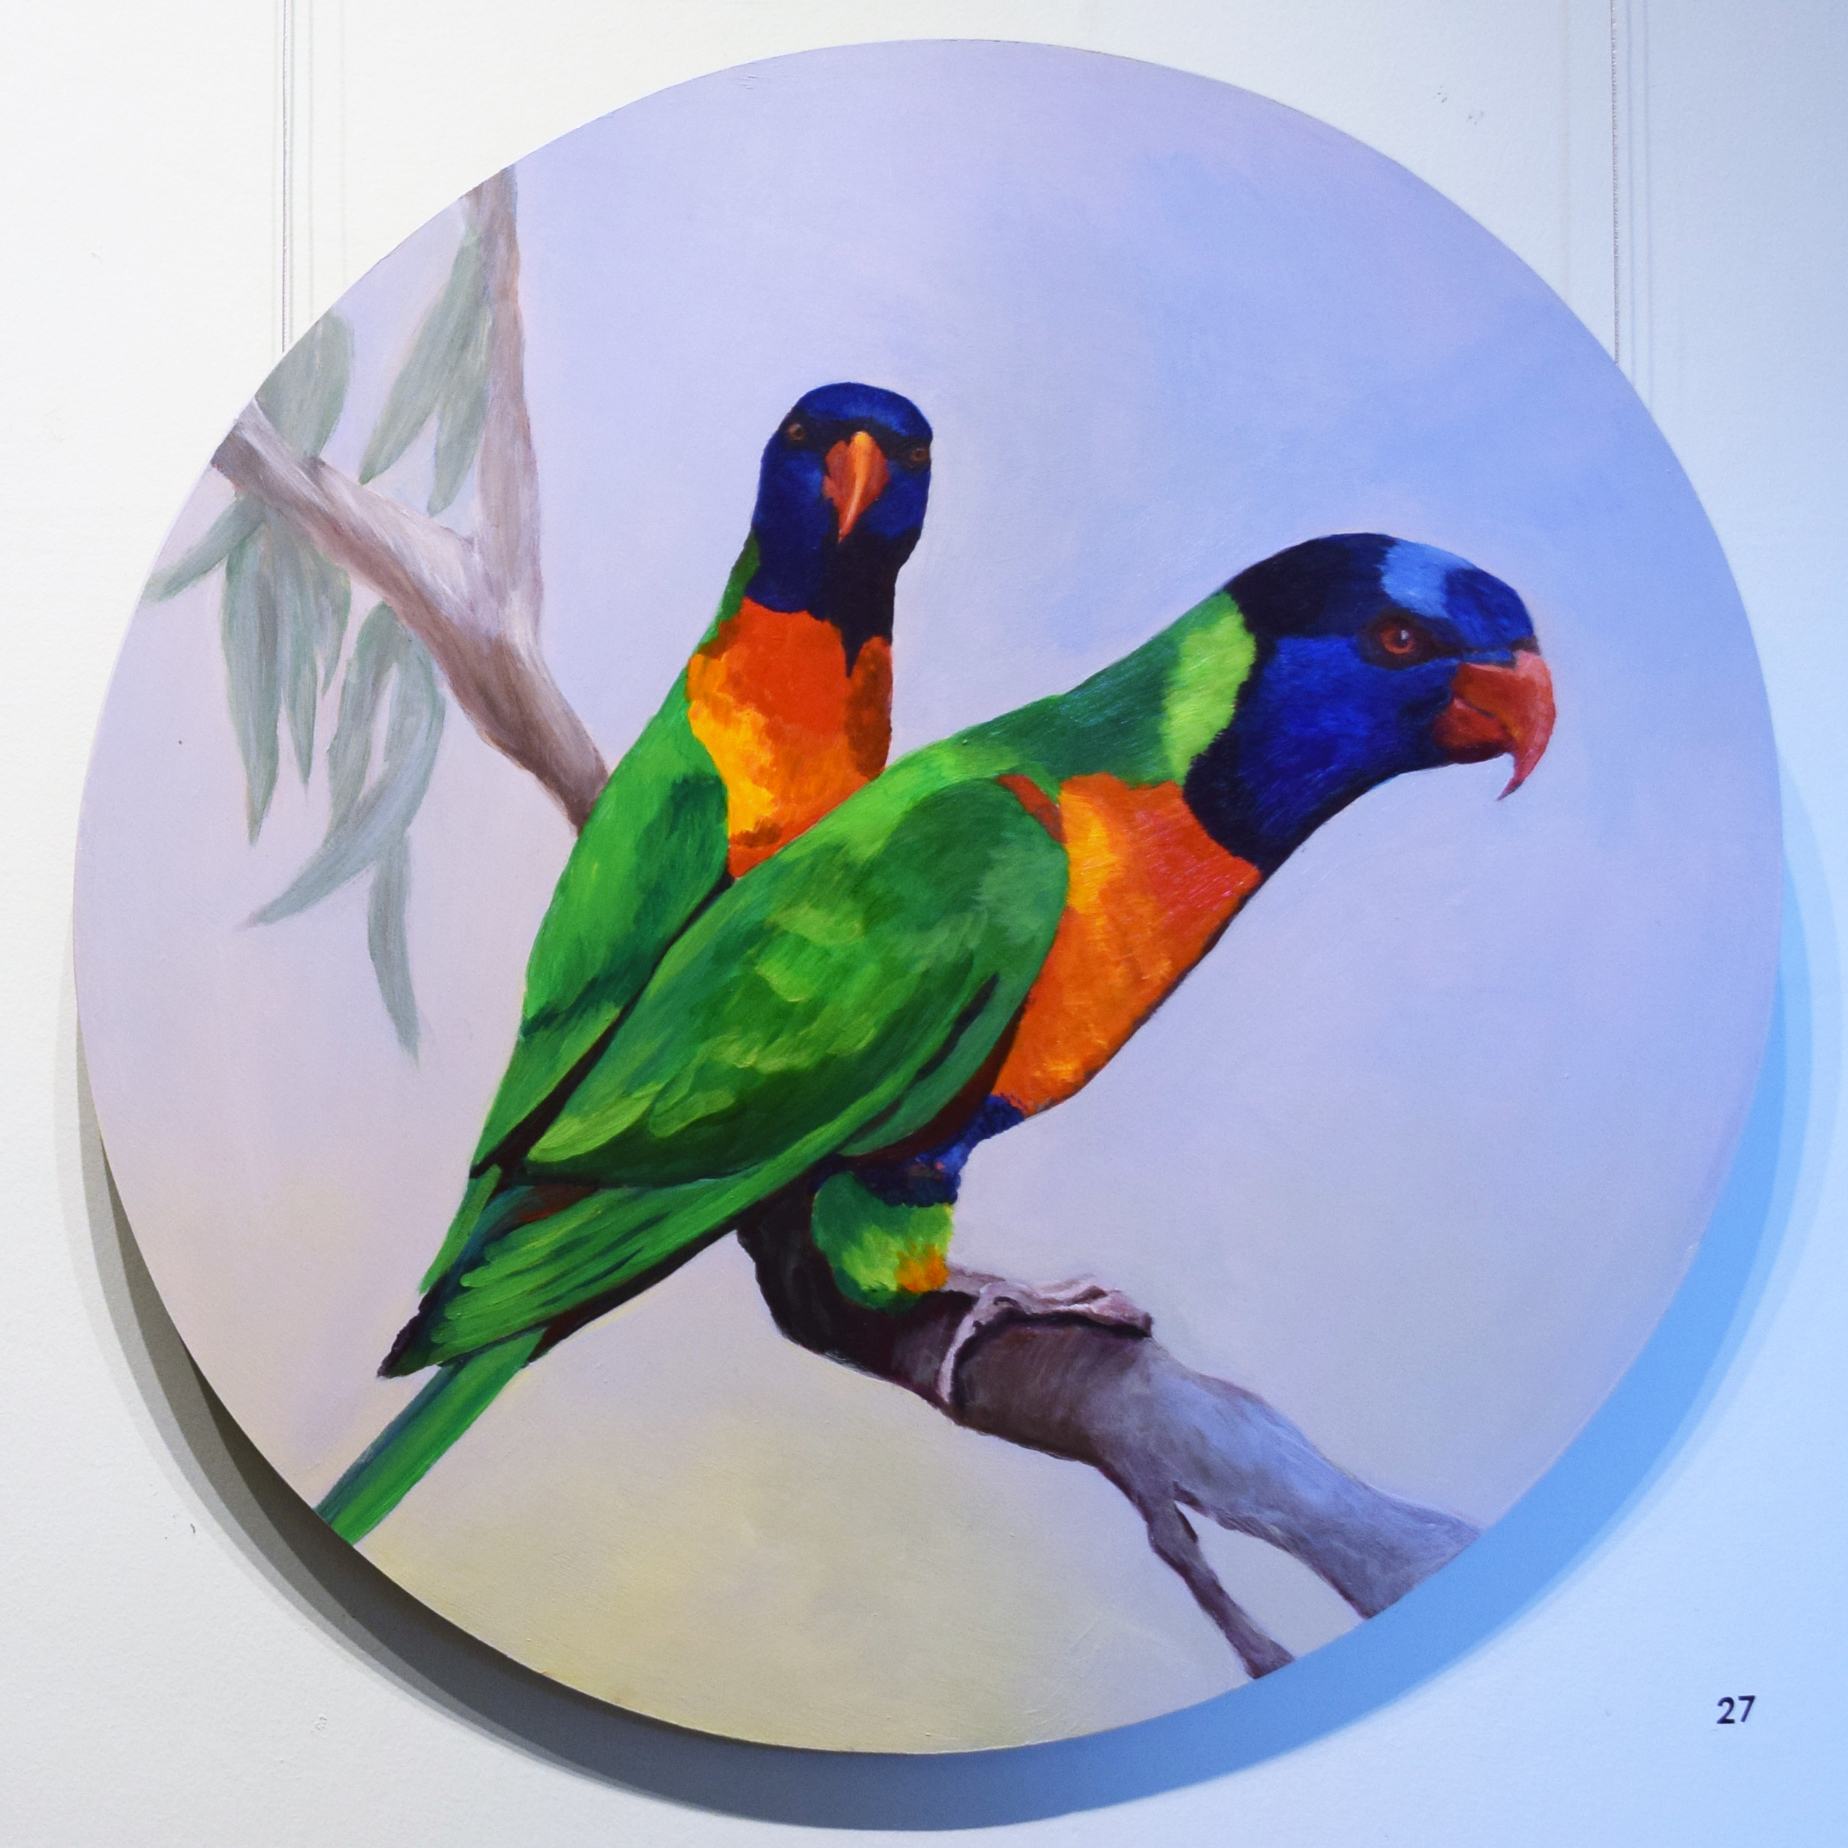 27. Joy Connell, Rainbow Lorikeets, 2017, acrylic on board, 60 x 60 cm, $1,150 (for sale by commission).jpg